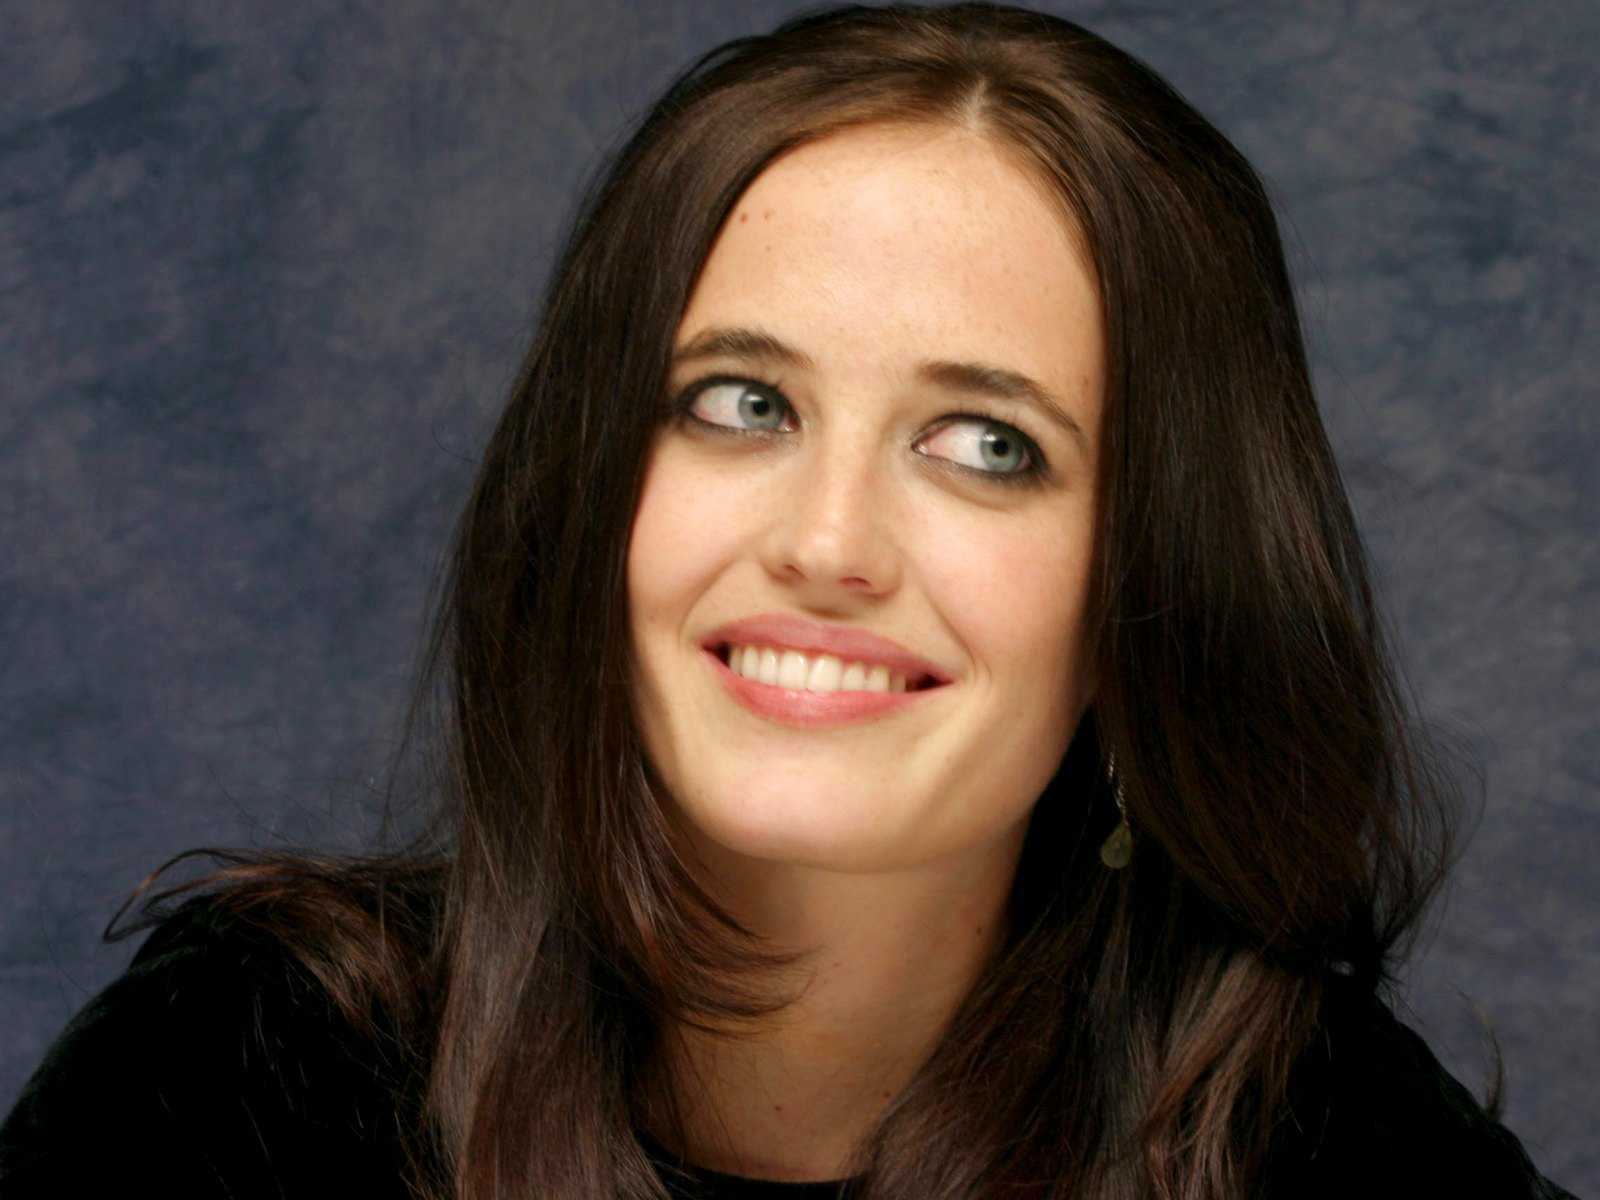 Lovely Eva Green Cute Smile Face And Eye Look Background Hd Free Mobile Desktop Images